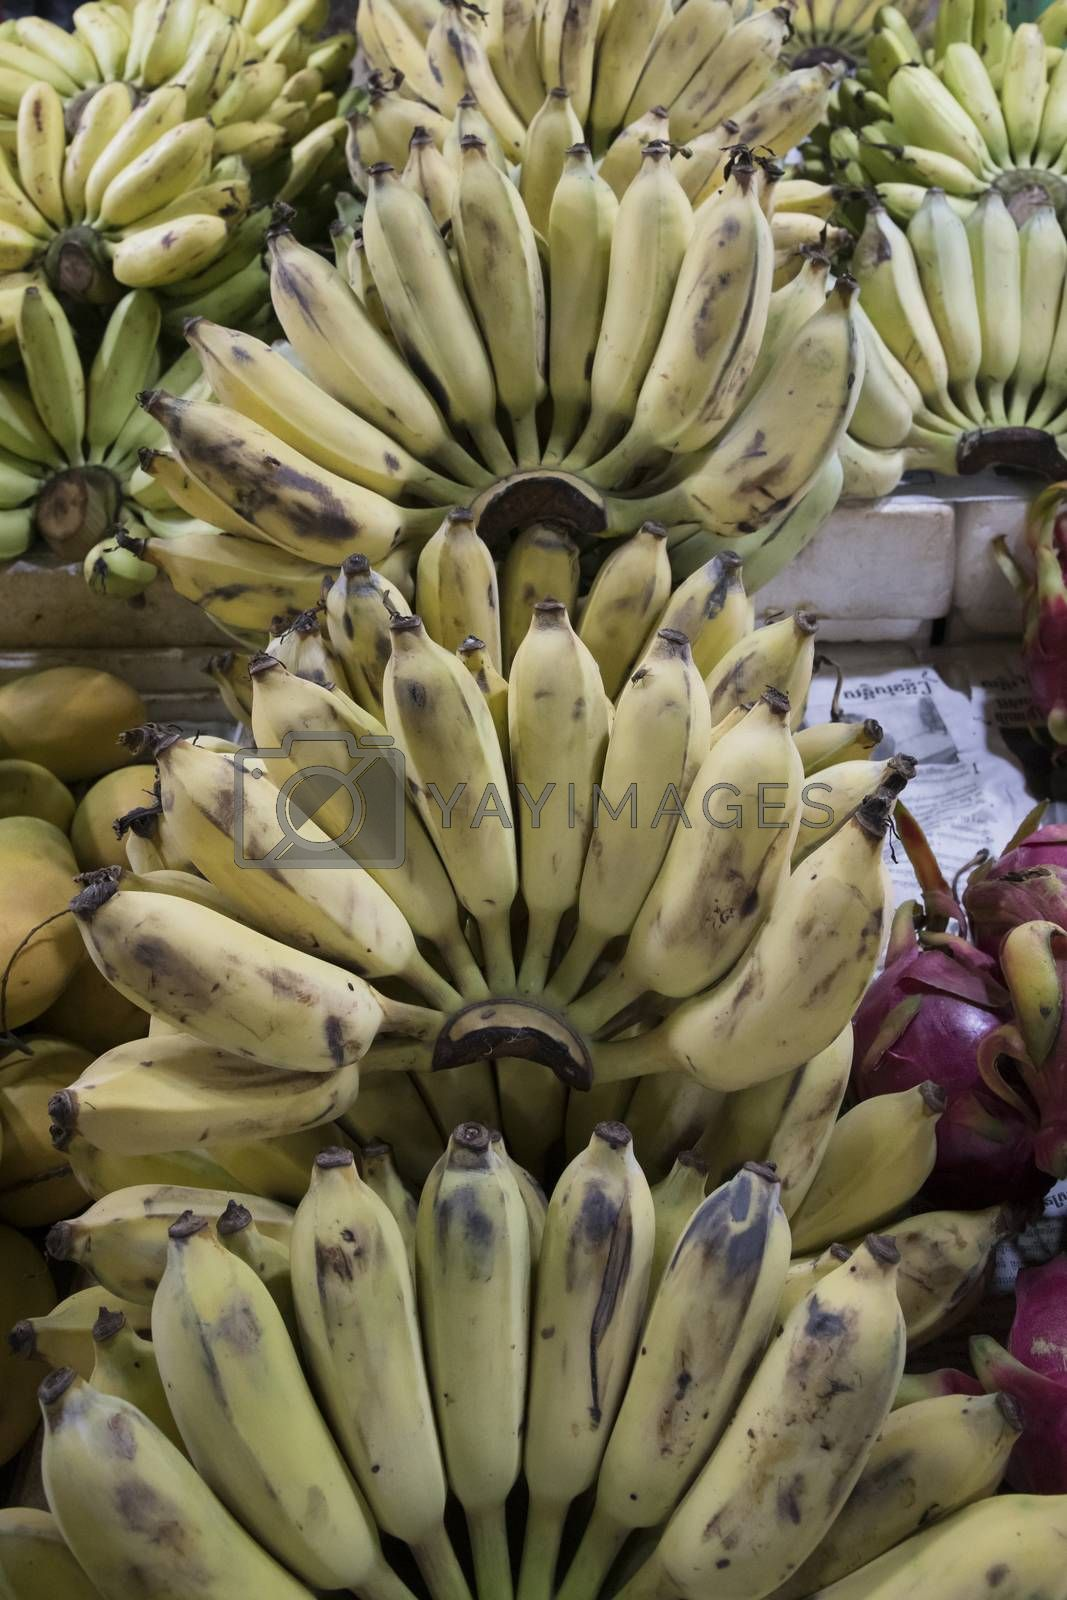 Siem Reap, Cambodia, 28 March 2018. Bananas at the Fresh Food Market of the city